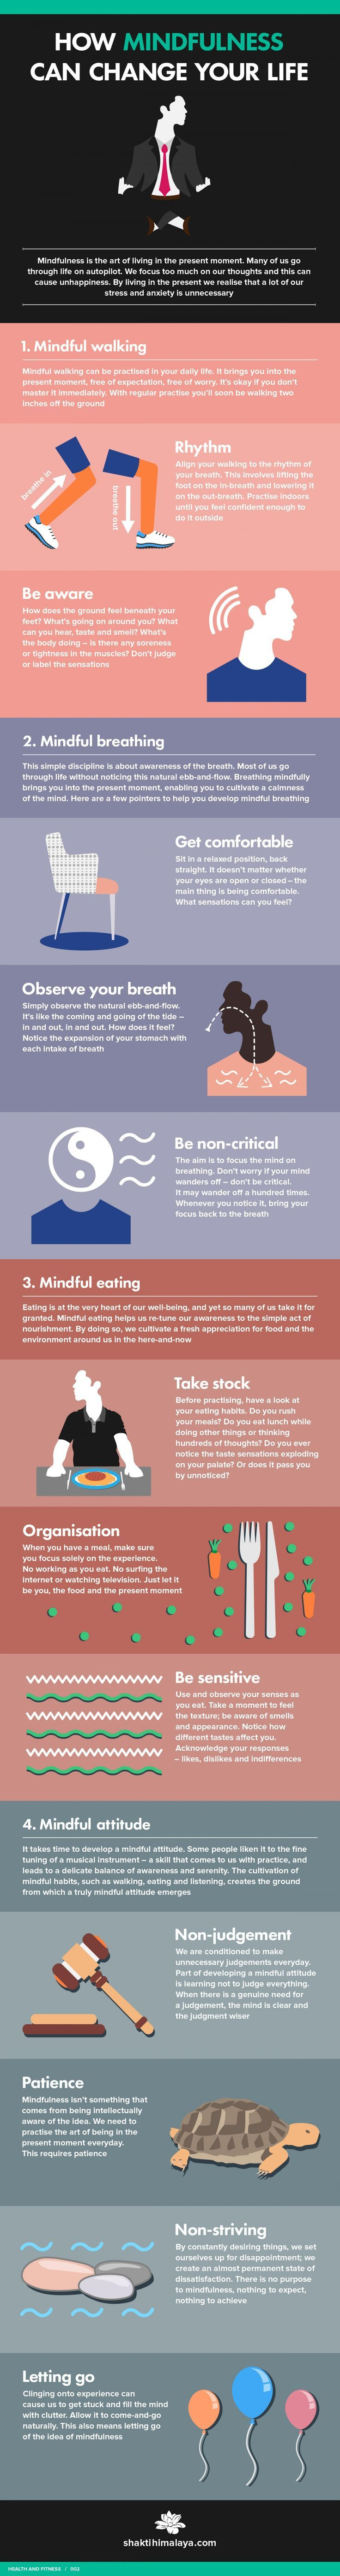 """Mindfulness is not a magic trick that all of a sudden eliminates stress and gives you the life of your dreams. But people who have integrated a mindfulness practice into their lives, repeatedly use the phrase """"life-changing"""" to describe it. Whether it's here in this Infographic or somewhere in the future, we hope the"""